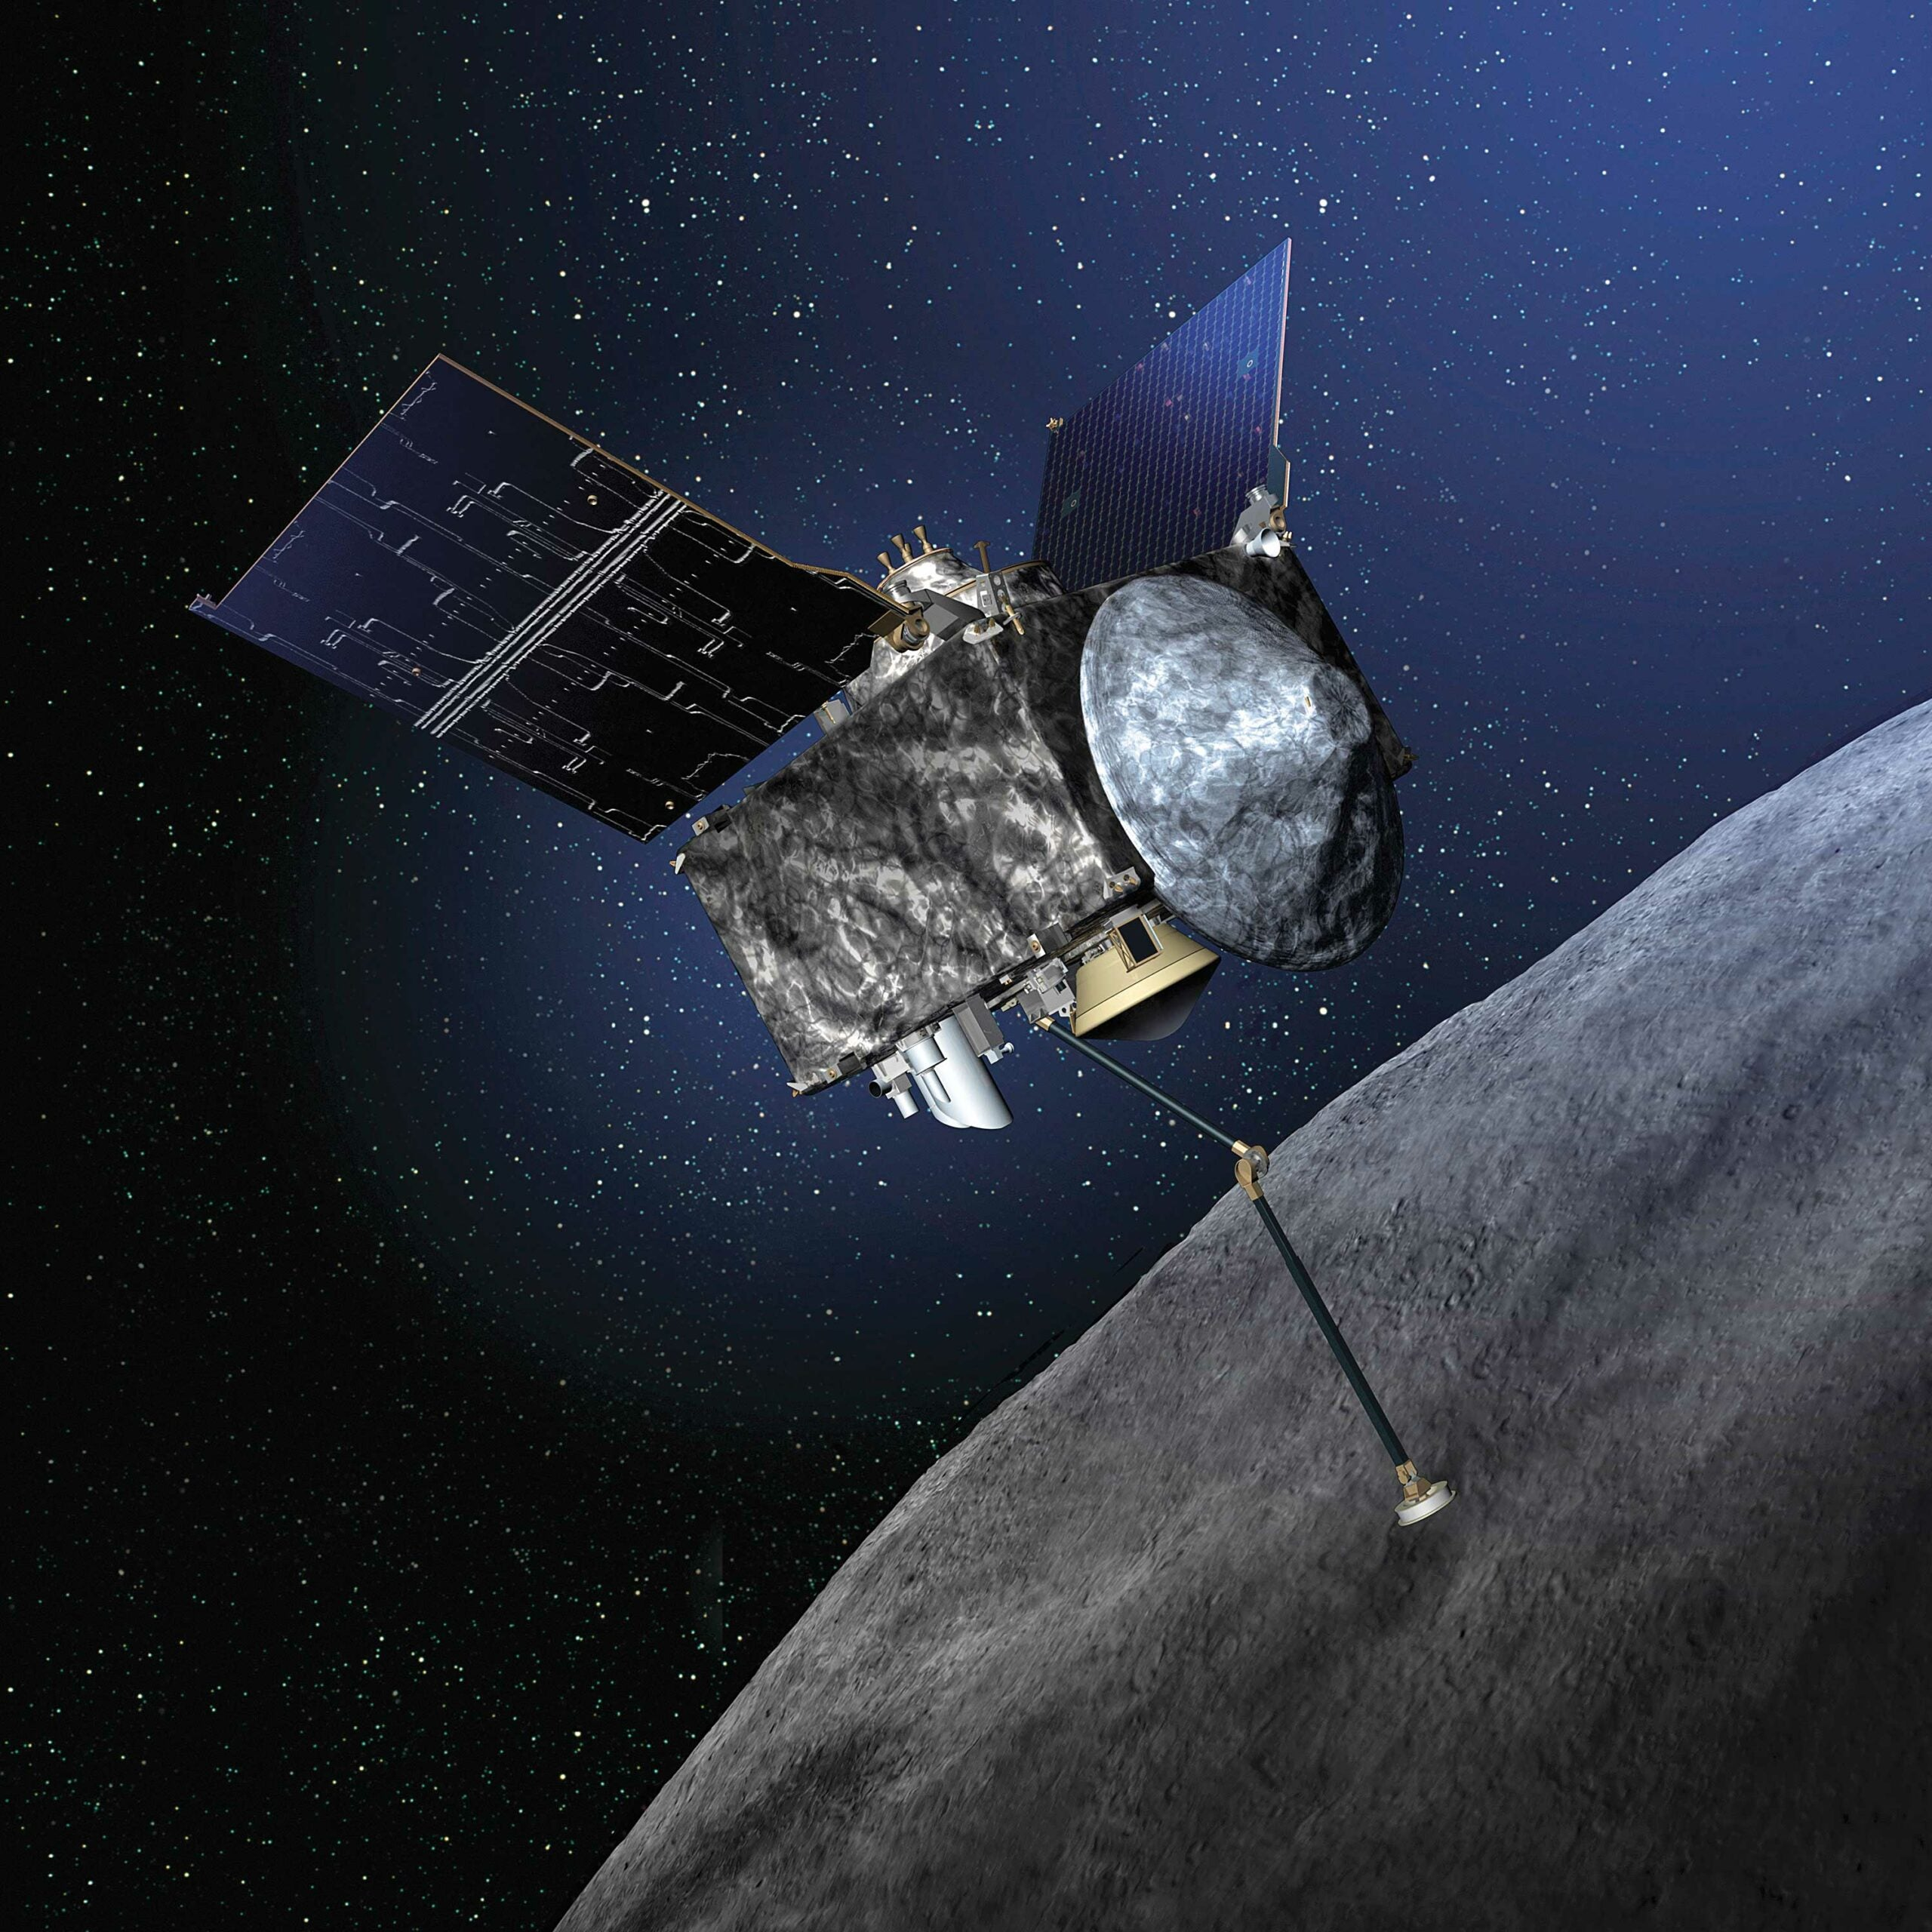 The Mission To Visit A Killer Asteroid